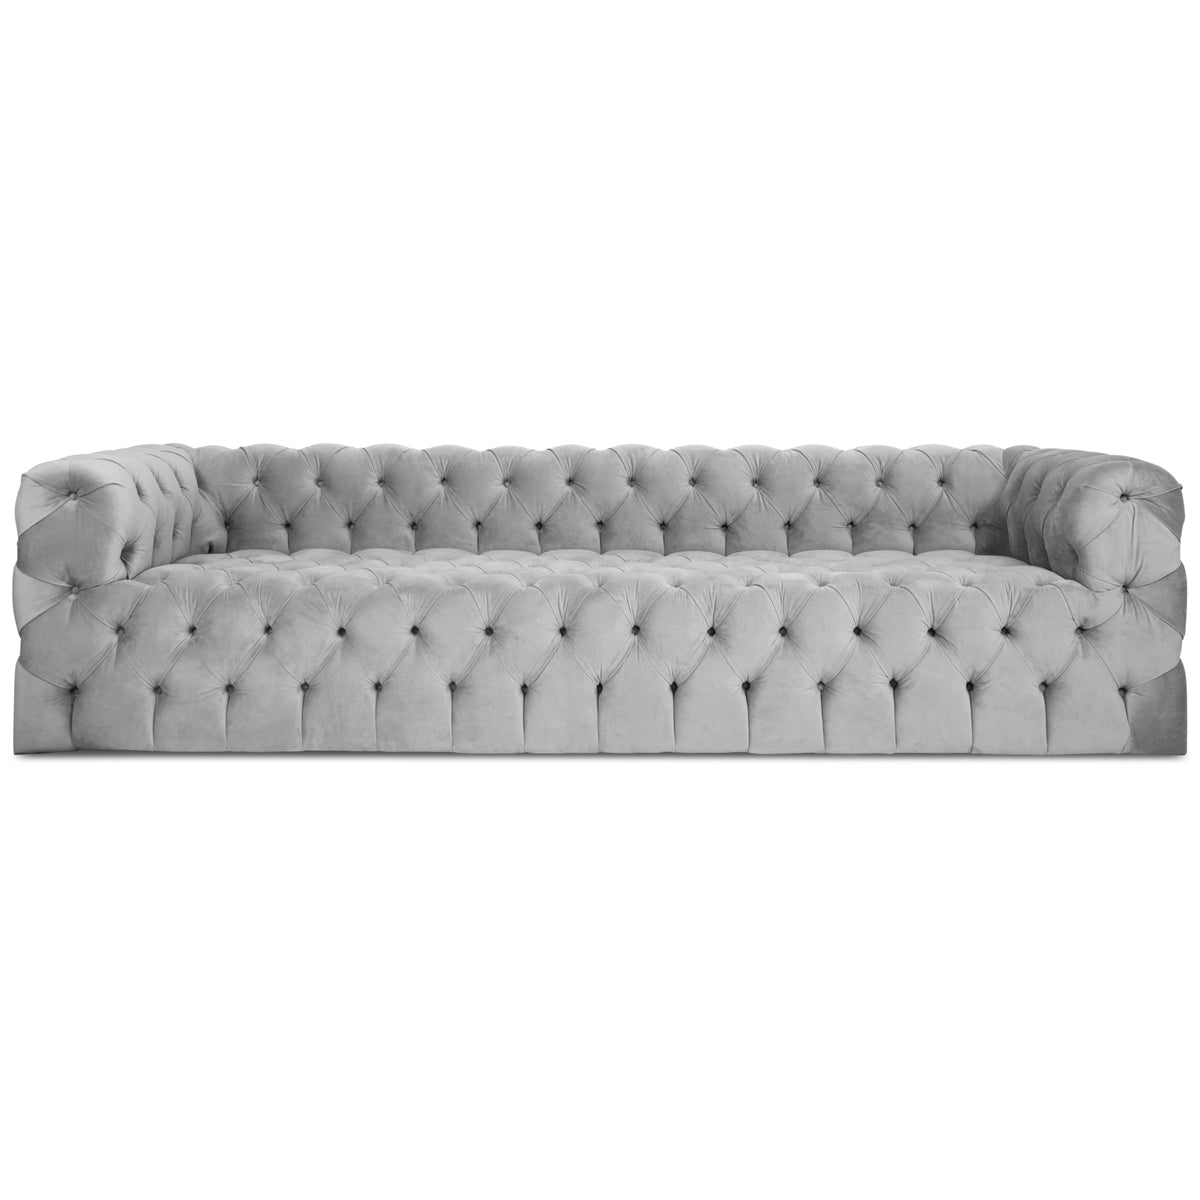 Palm Beach Sofa in Velvet - ModShop1.com